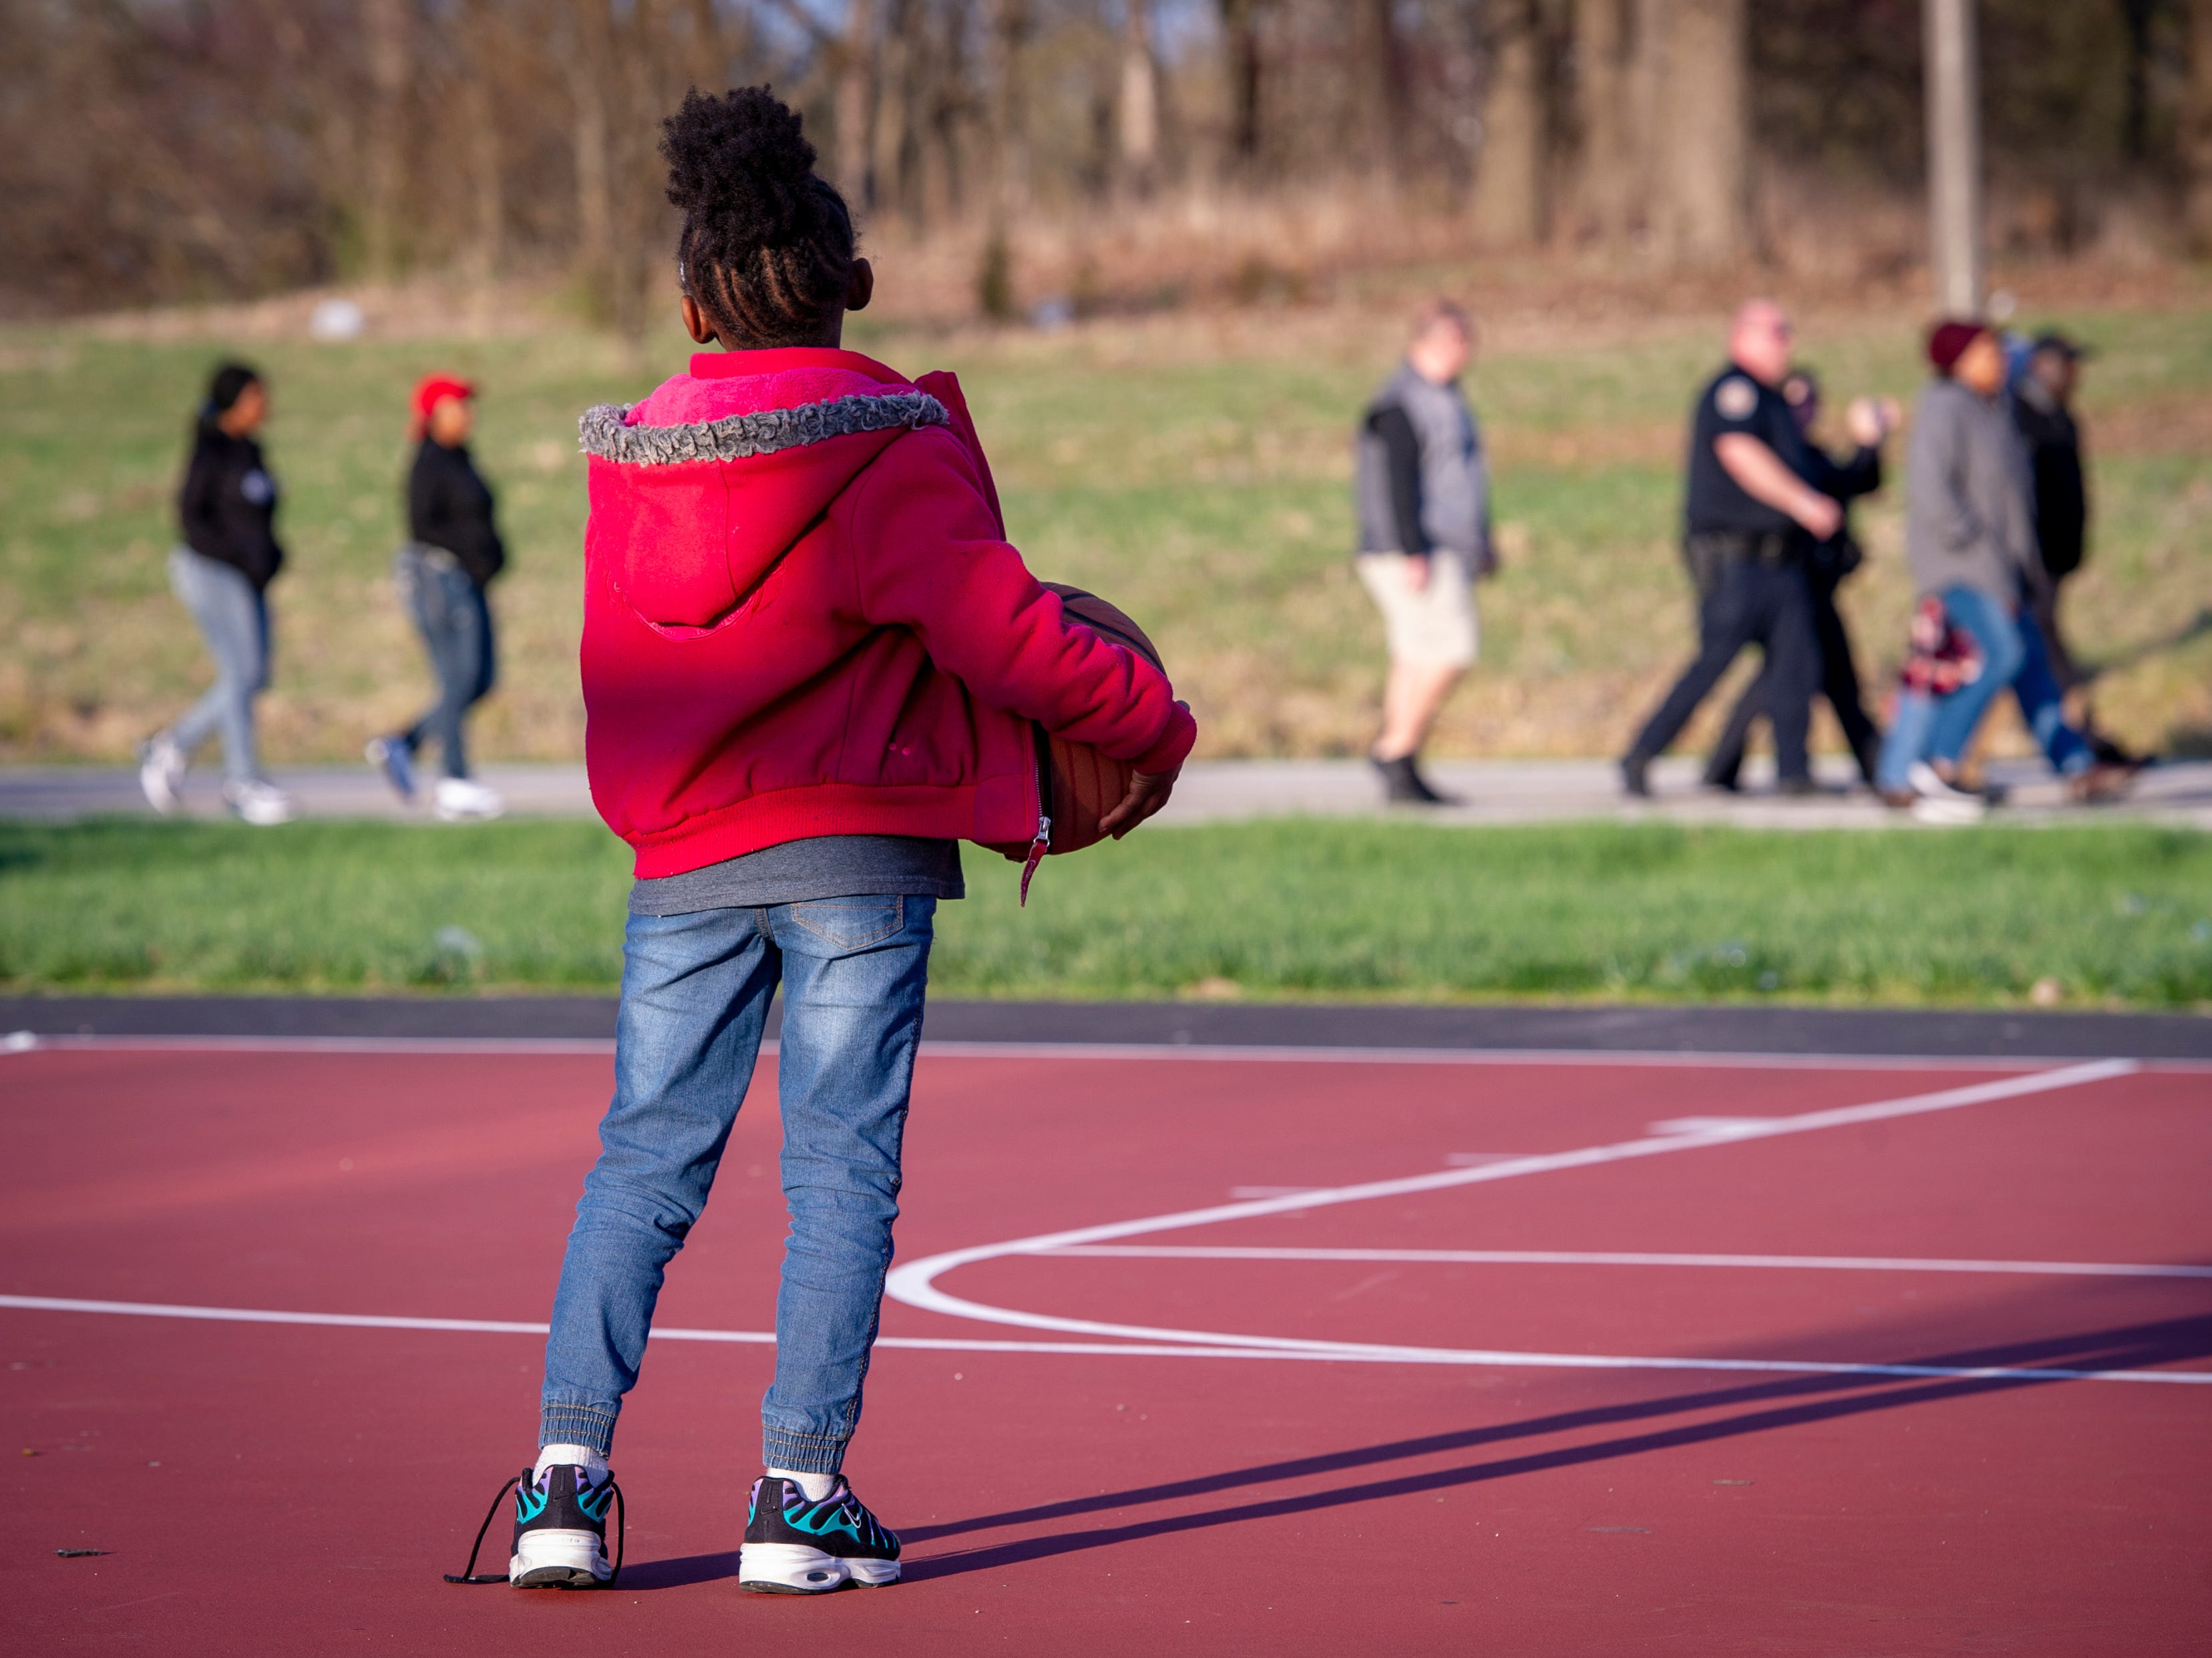 A young girl pauses her basketball game to watch the parade of activists pass by in the park. The Indianapolis Fraternal Order of Police, along with members of the Indy Ten Point Coalition, law enforcement officers from Southport, Lawrence, Cumberland police departments and a group of citizens participated in a peace walk, Friday, April 12, 2019. The groups organized in an effort to raise awareness for the increase of violence in the area of Washington Park on the northeast side of Indianapolis.